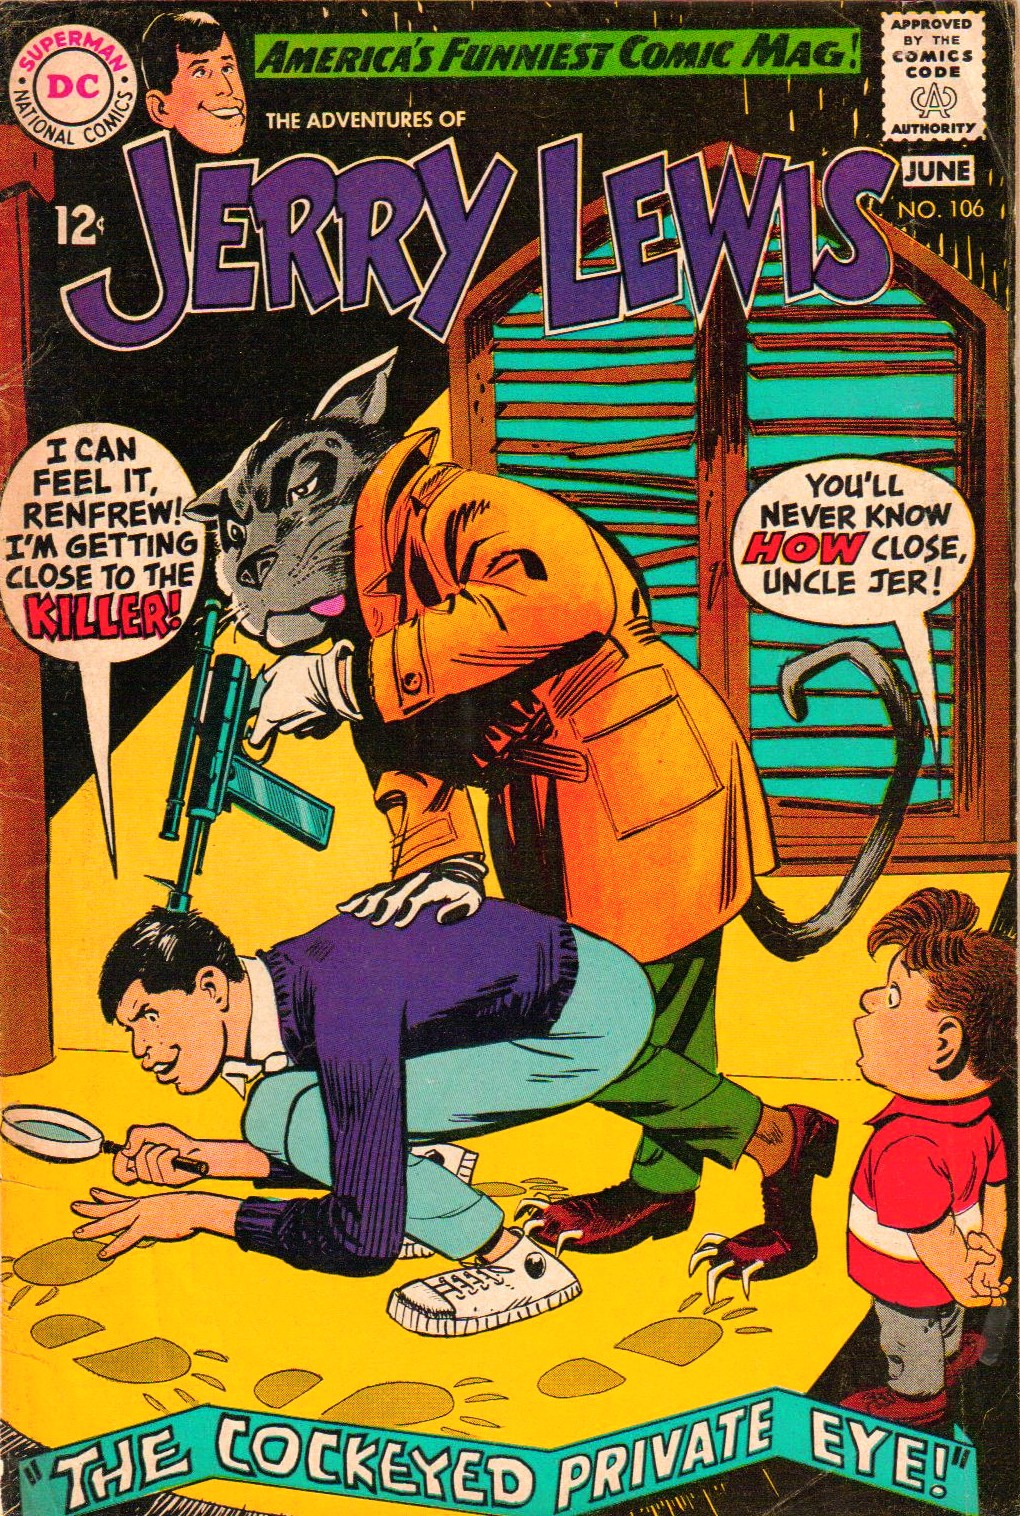 The Adventures of Jerry Lewis 106 Page 1